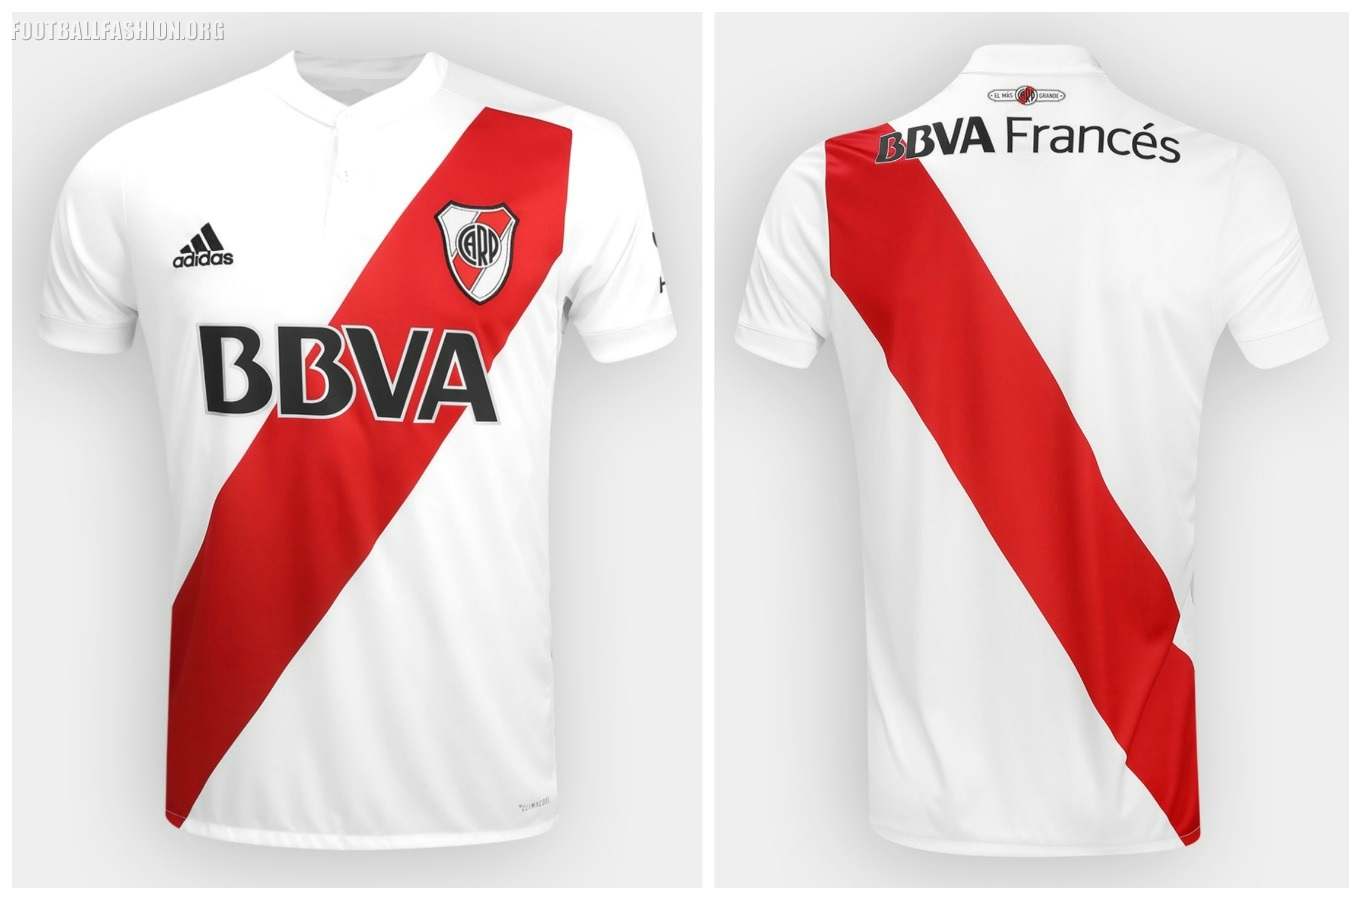 eee3f90639d River Plate 2017 2018 adidas Home Football Kit, Soccer Jersey, Shirt,  Camiseta,